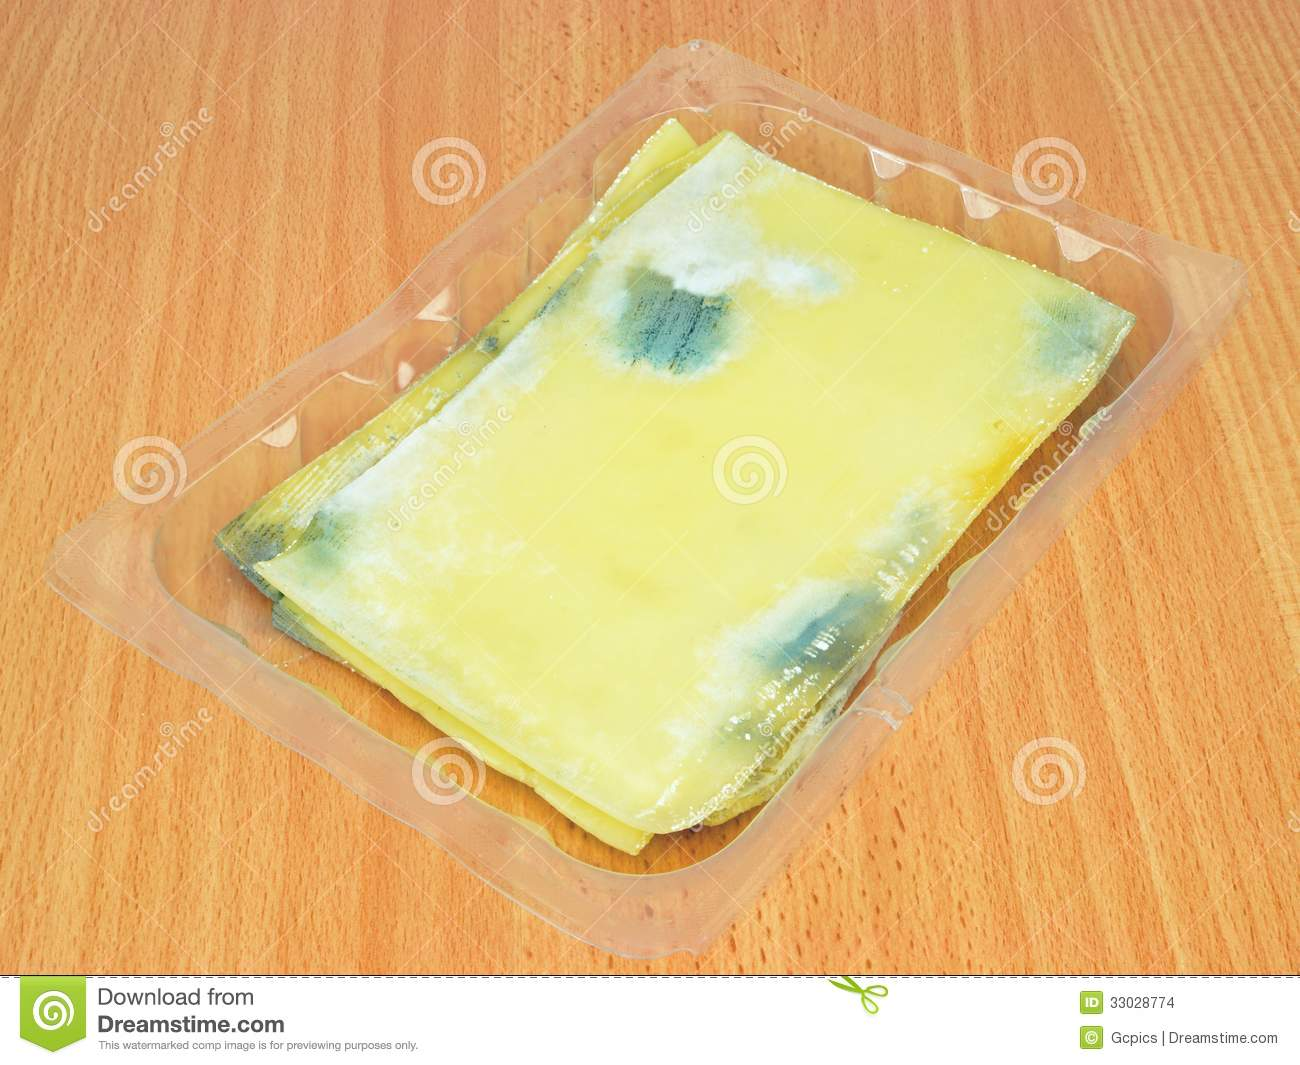 Rotten Slices Of Cheese Stock Images - Image: 33028774